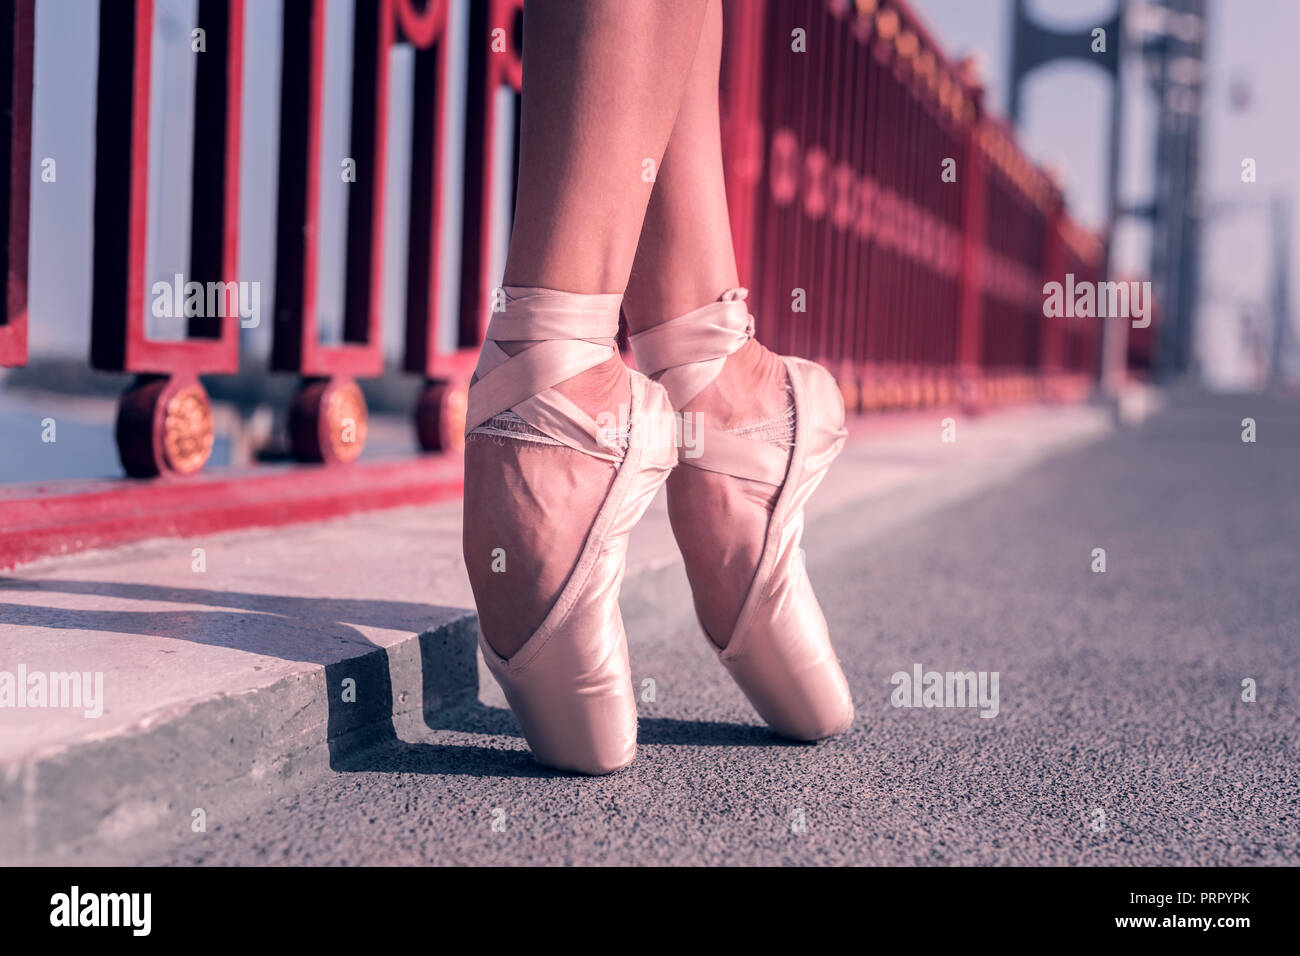 Nice female ballet dancer wearing pointe shoes Stock Photo